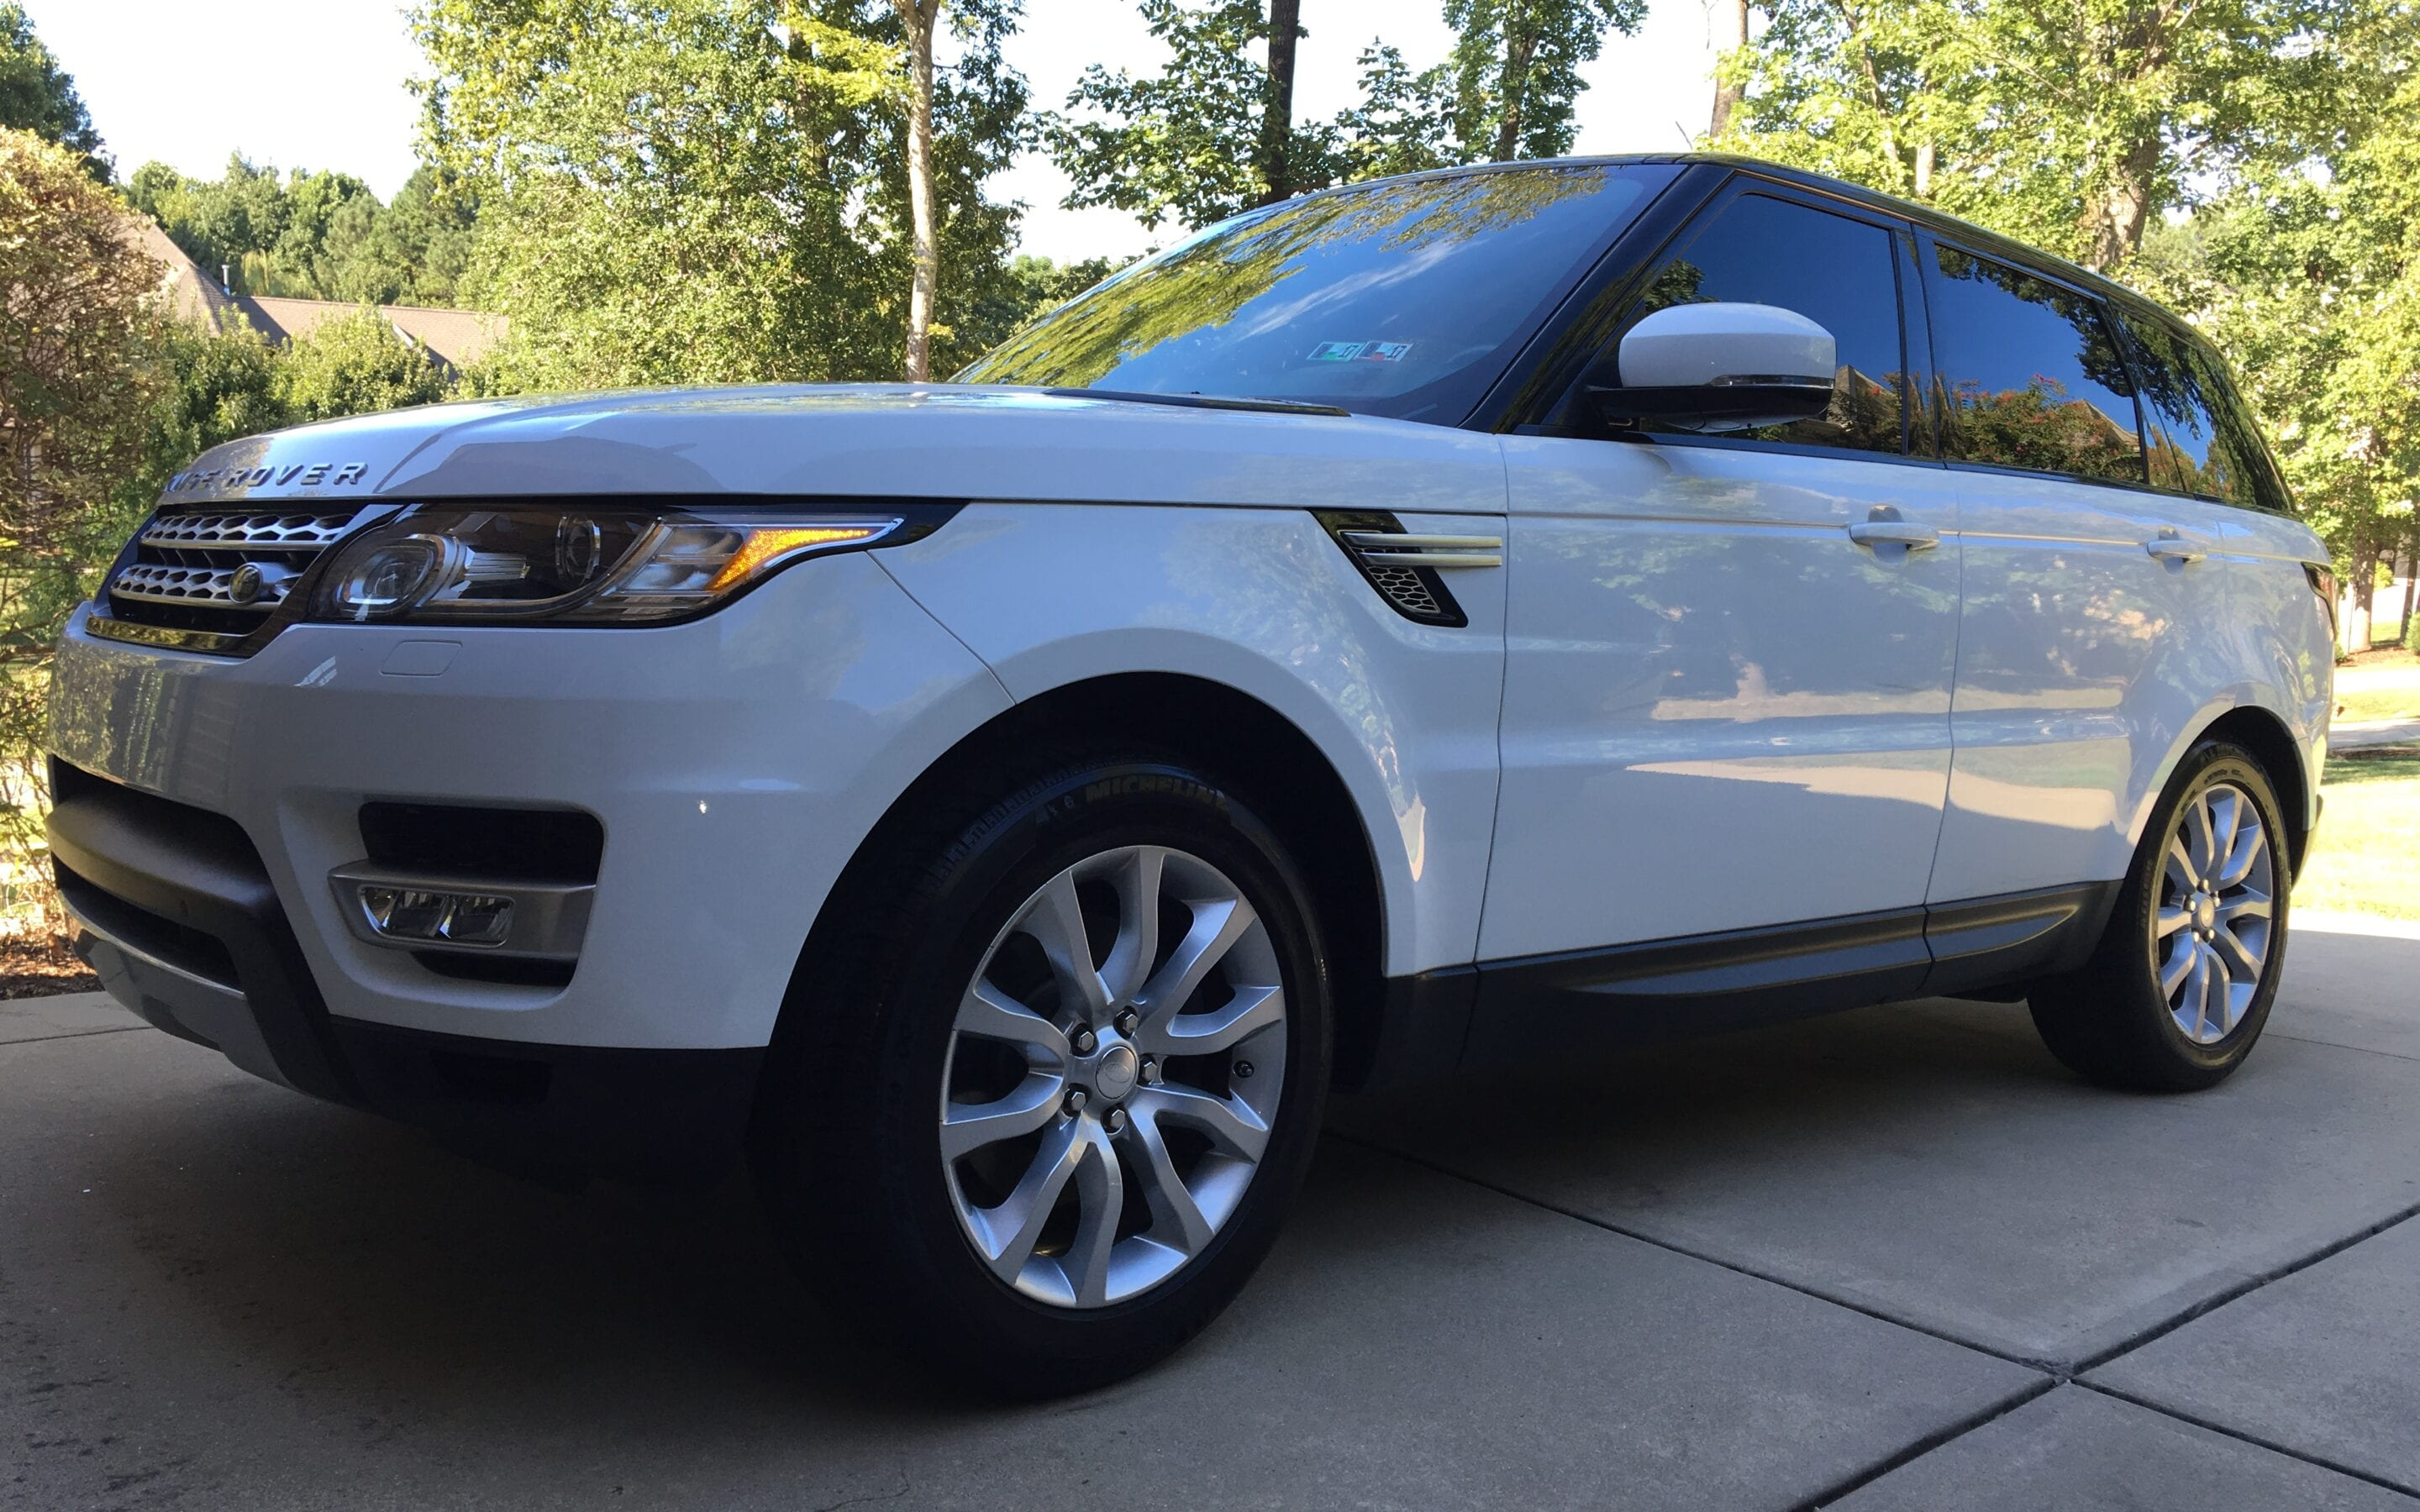 Photos of finished 2014 Range Rover Sport